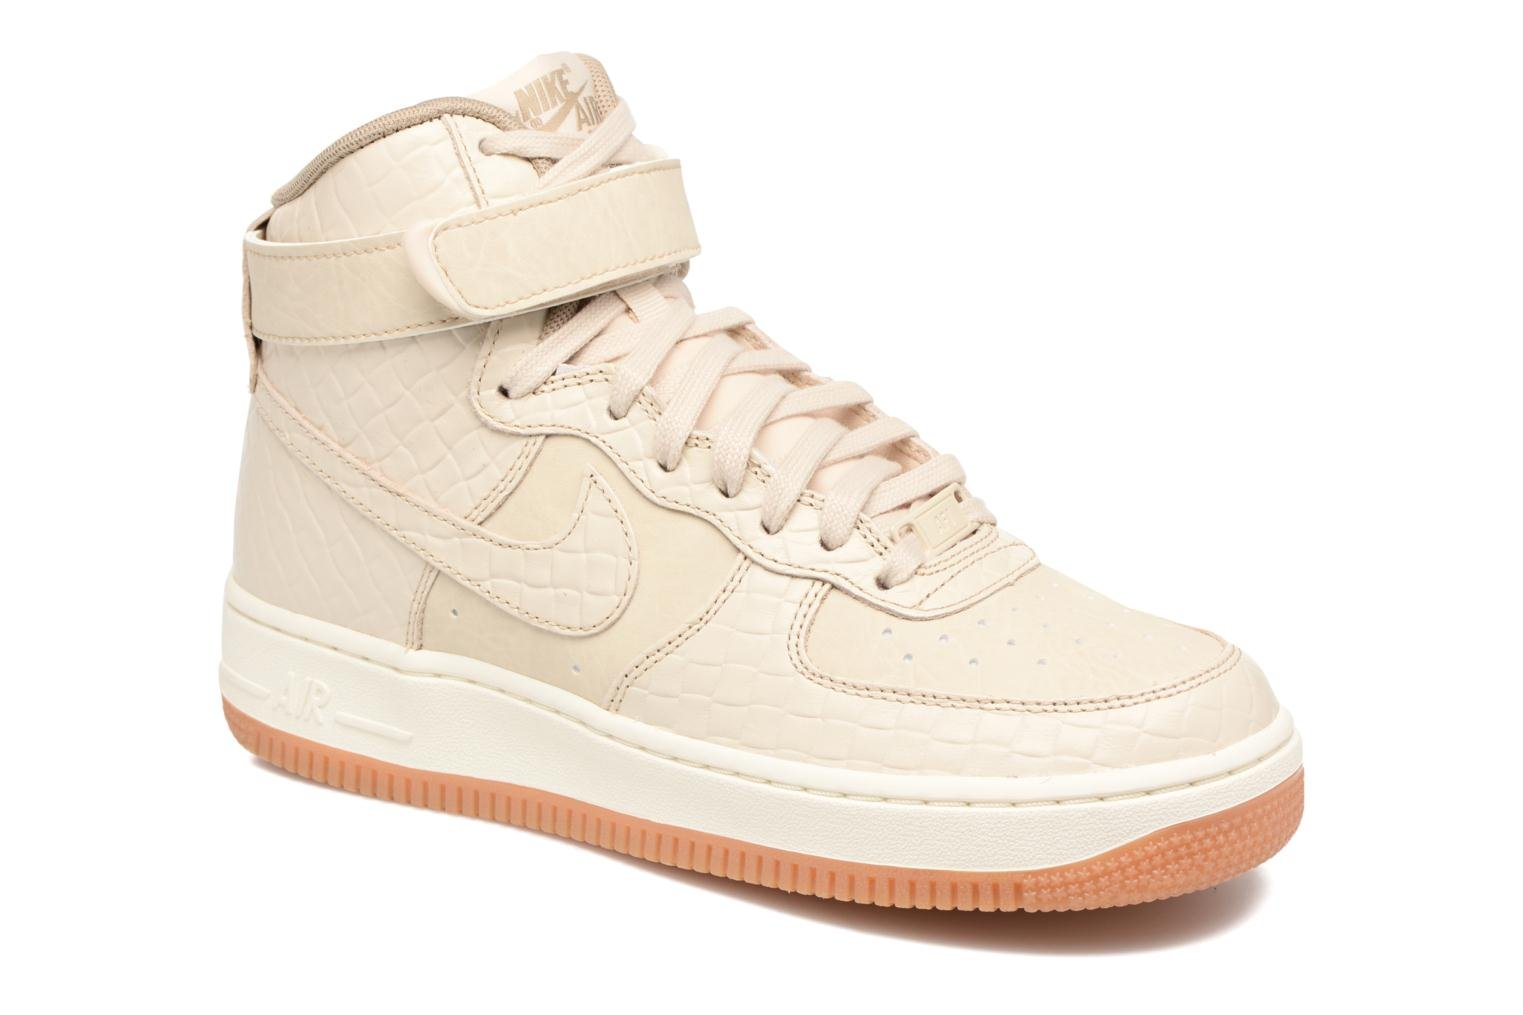 Wmns Air Force 1 Hi Prm Oatmeal/Oatmeal-Khaki-Sail